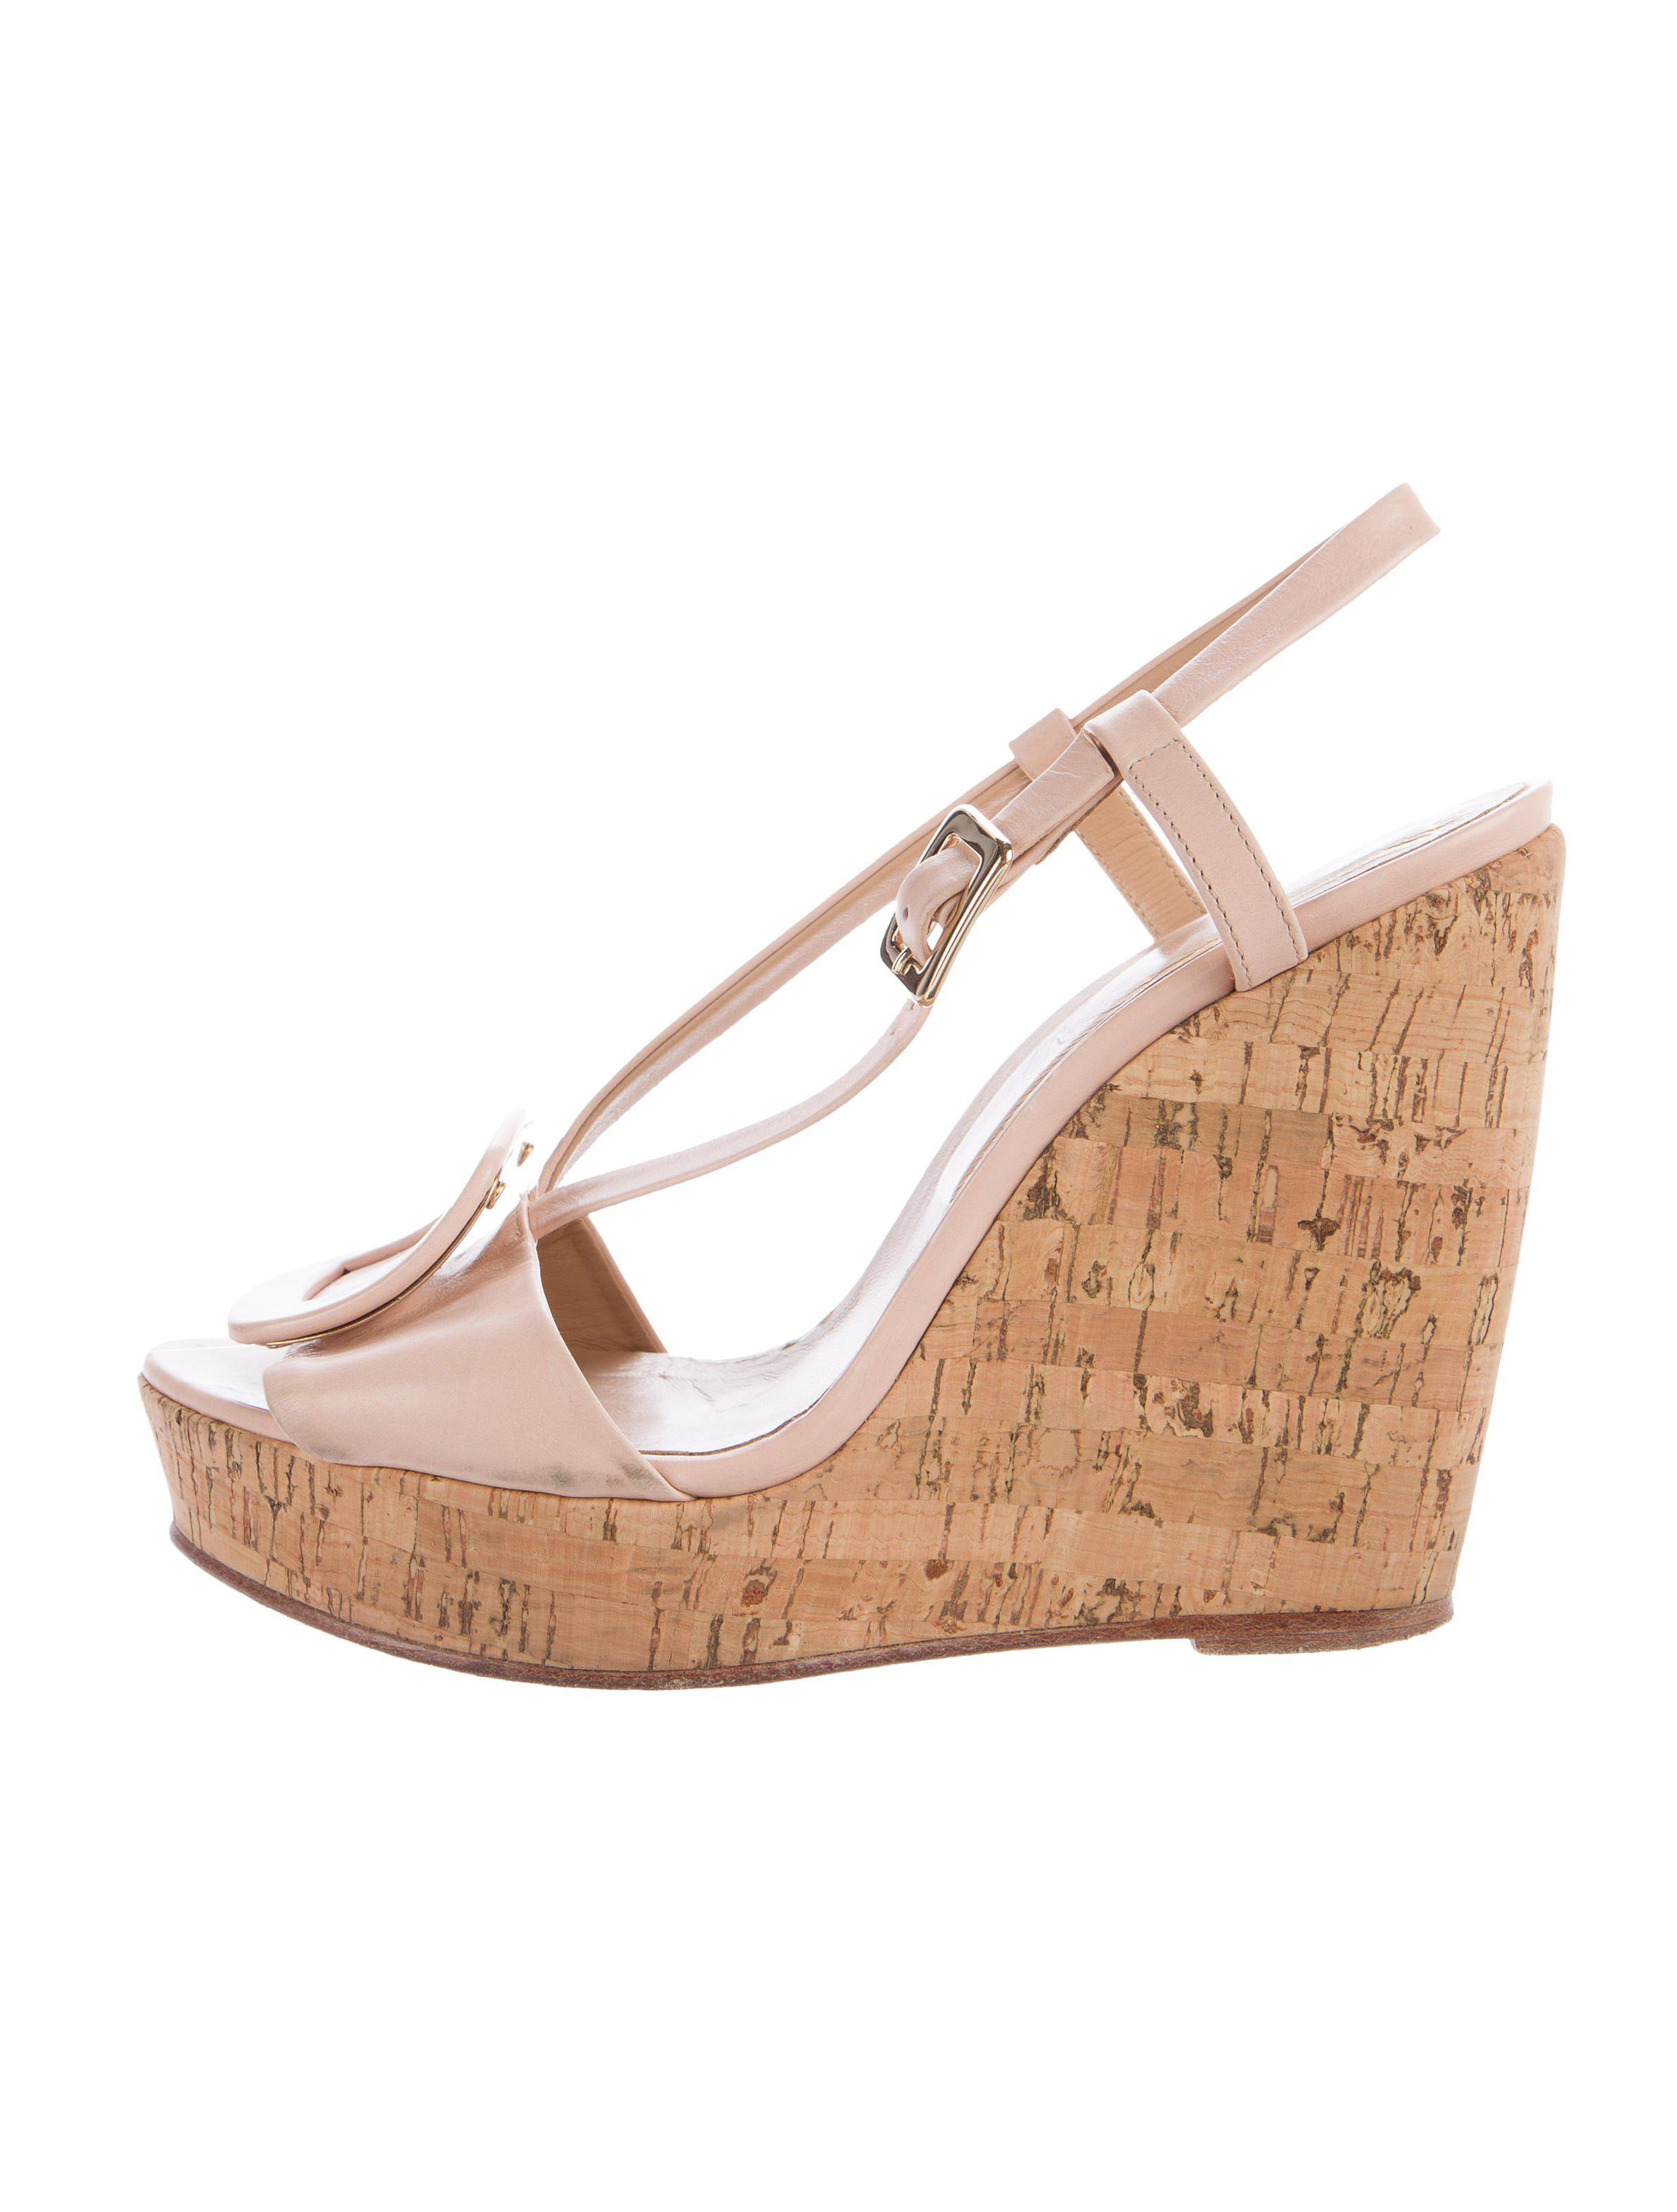 Roger Vivier Buckle-Accented Wedge Sandals cheap sale low shipping cheap online shop clearance view 2lqKy